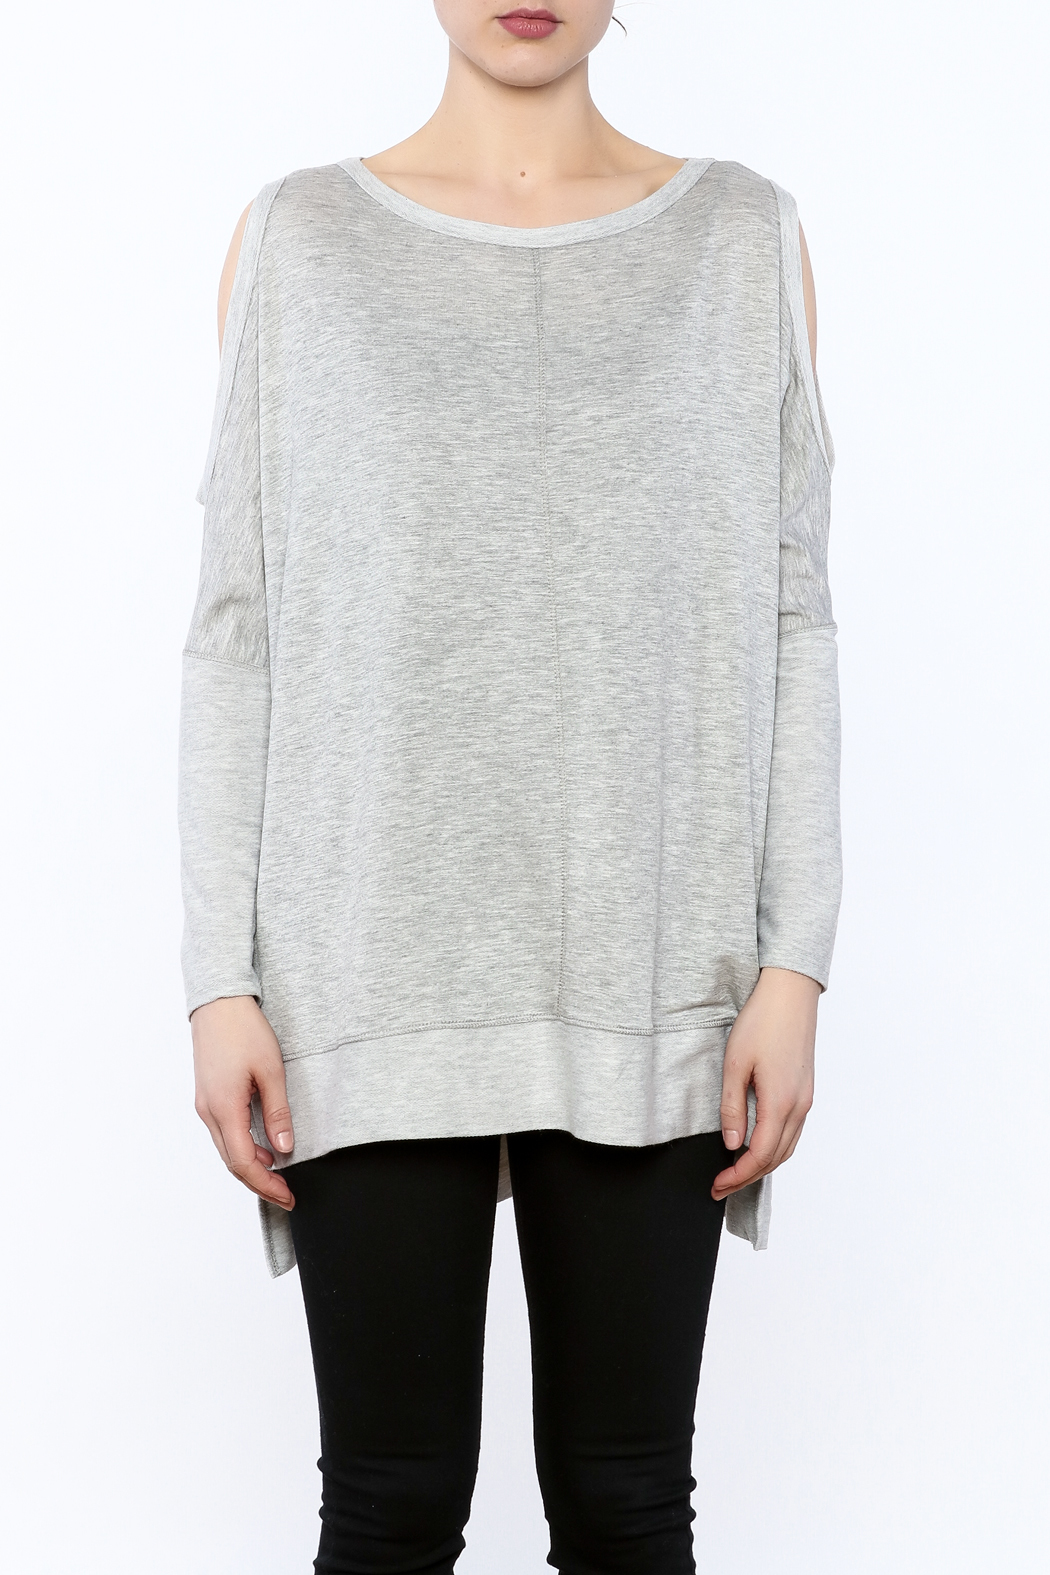 a.gain Grey Tunic Top - Side Cropped Image